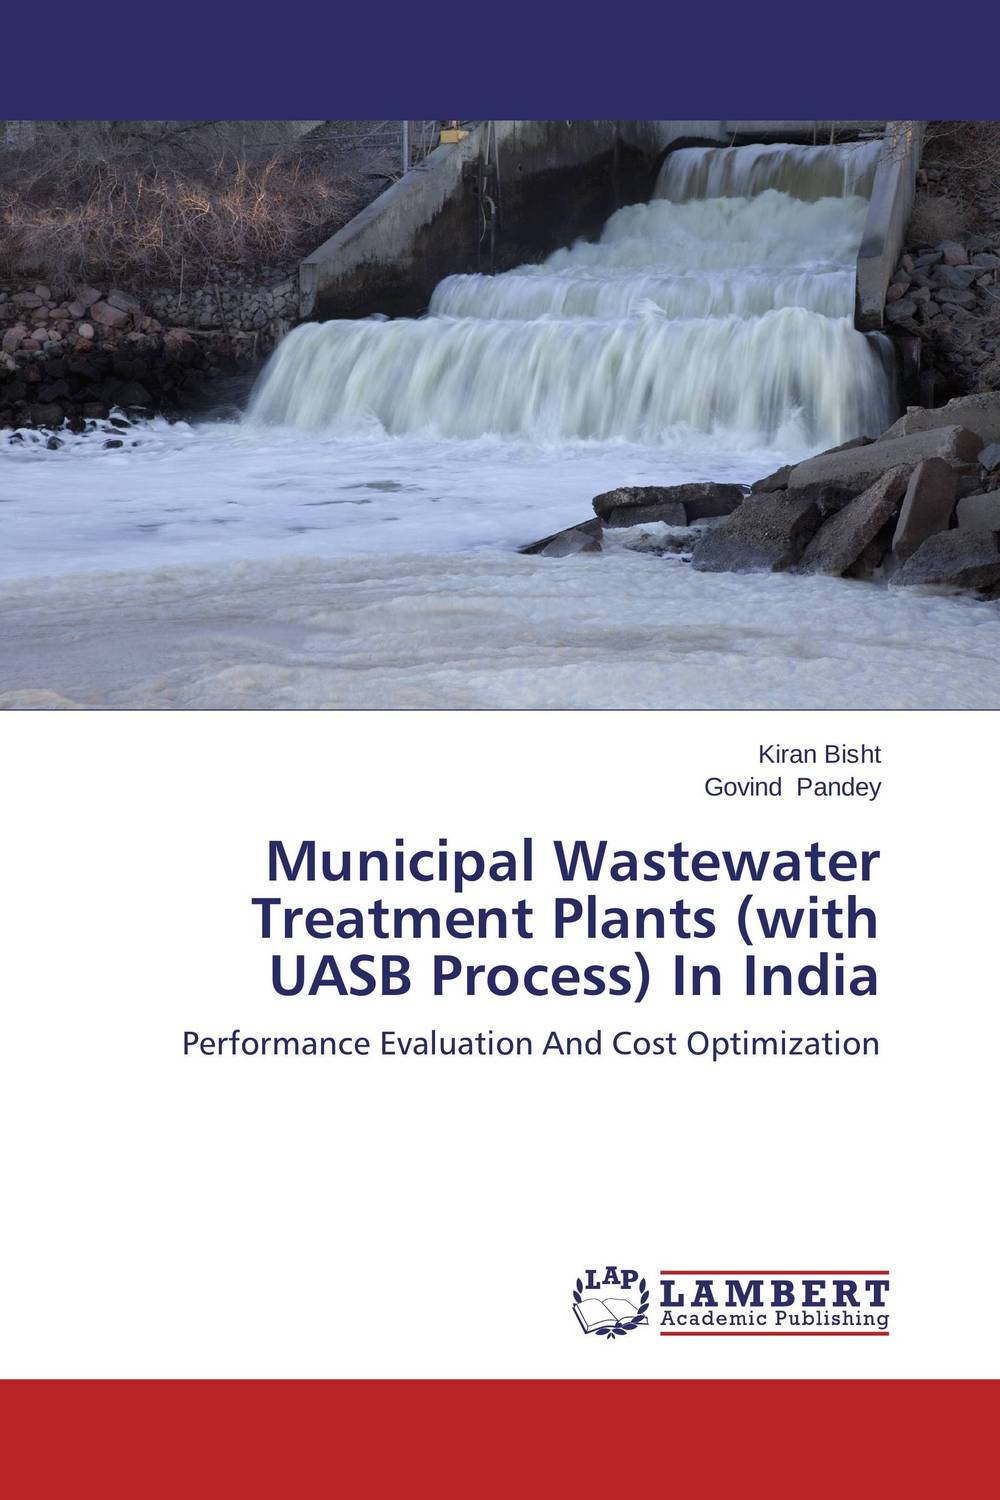 Municipal Wastewater Treatment Plants (with UASB Process) In India parker шариковая ручка parker s0808170